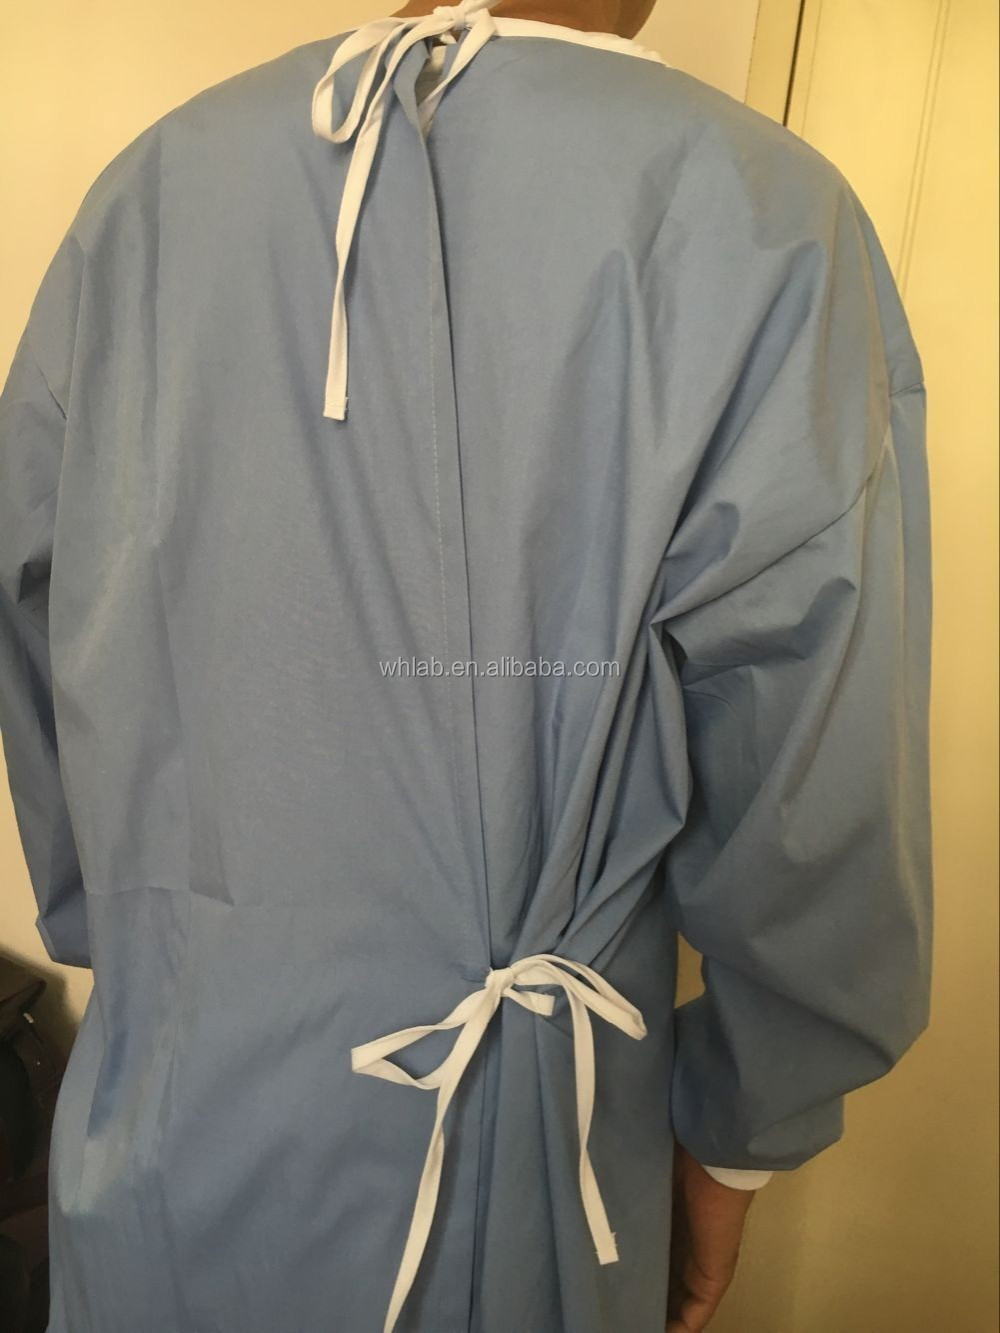 Anti Static Clothing : Two loyers anti static clothing waterproof smocks for